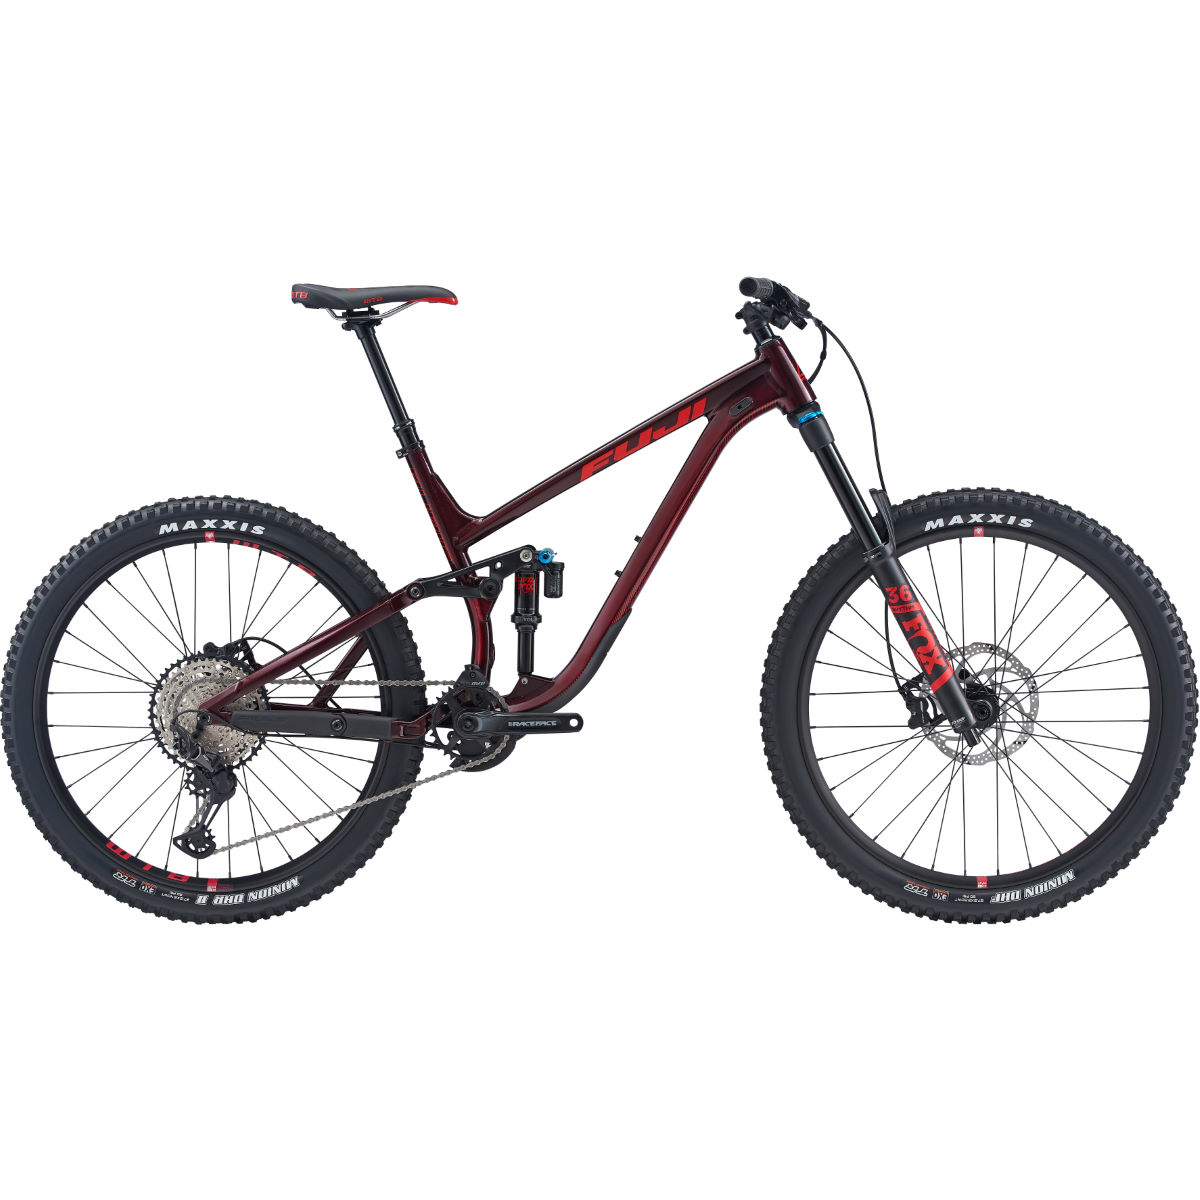 Fuji Fuji Auric LT 27.5 1.3 Full Suspension Bike (2020)   Full Suspension Mountain Bikes